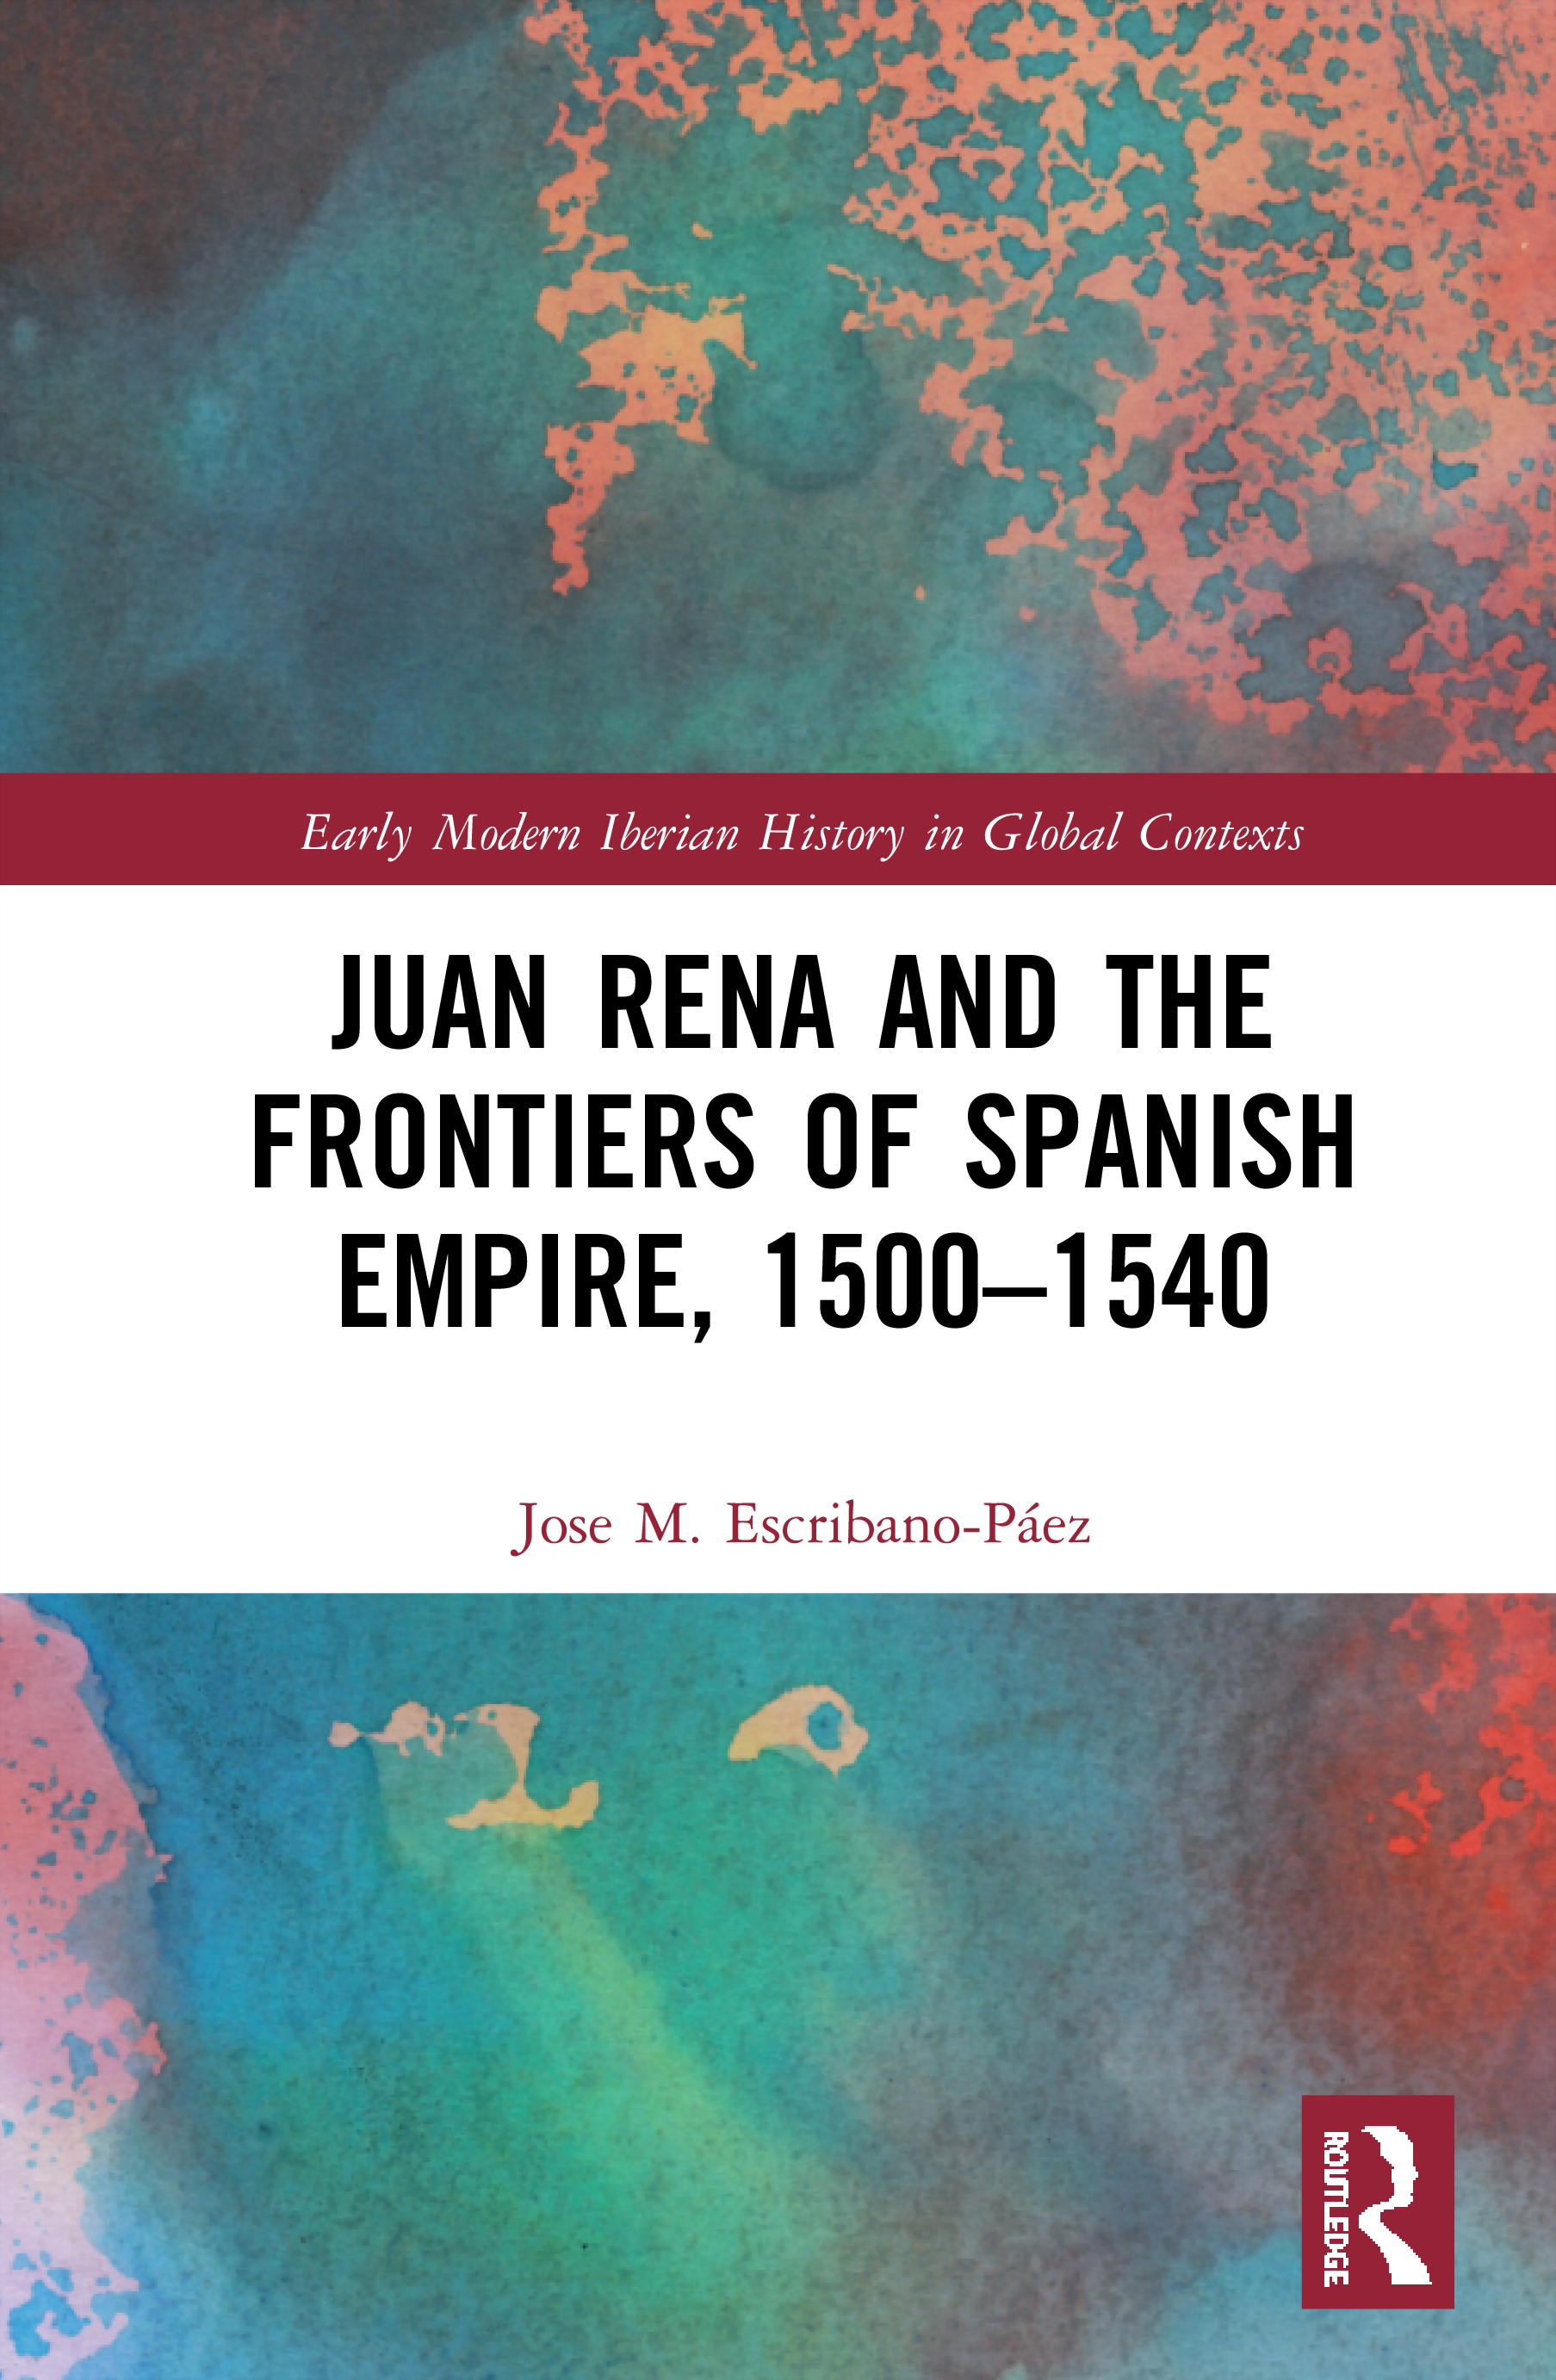 Juan Rena and the Frontiers of Spanish Empire, 1500–1540 book cover